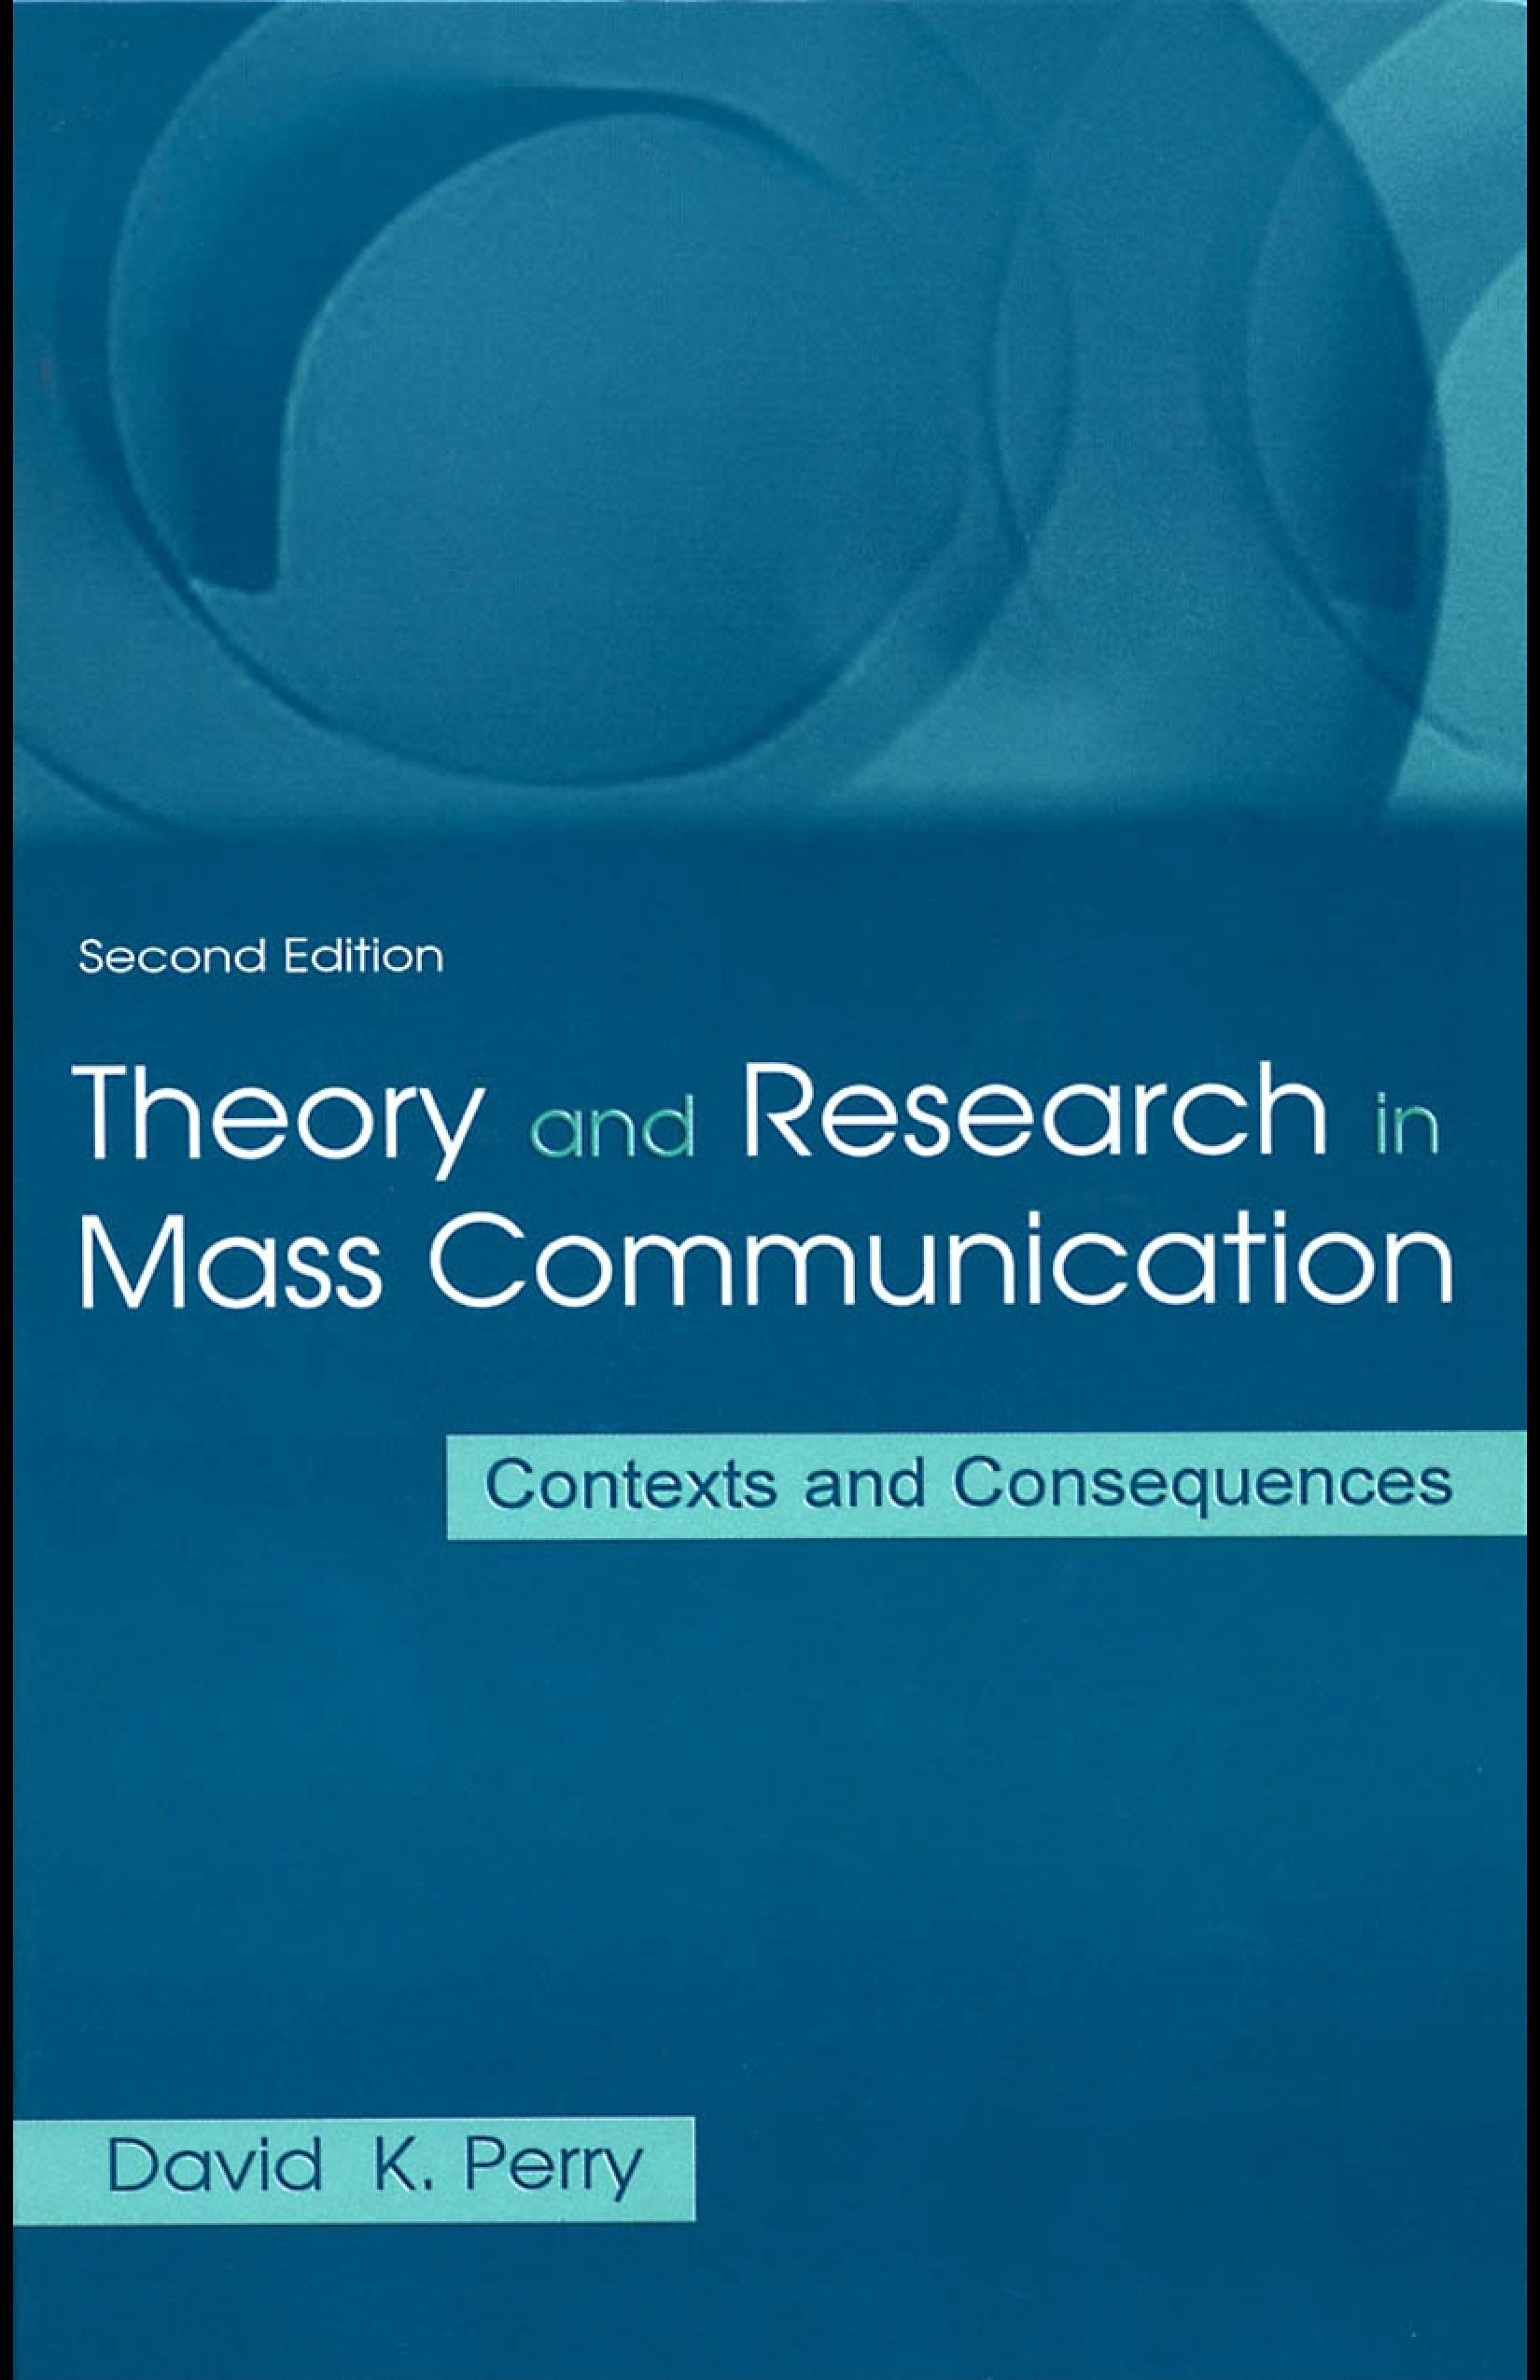 Theory and Research in Mass Communication: Contexts and Consequences